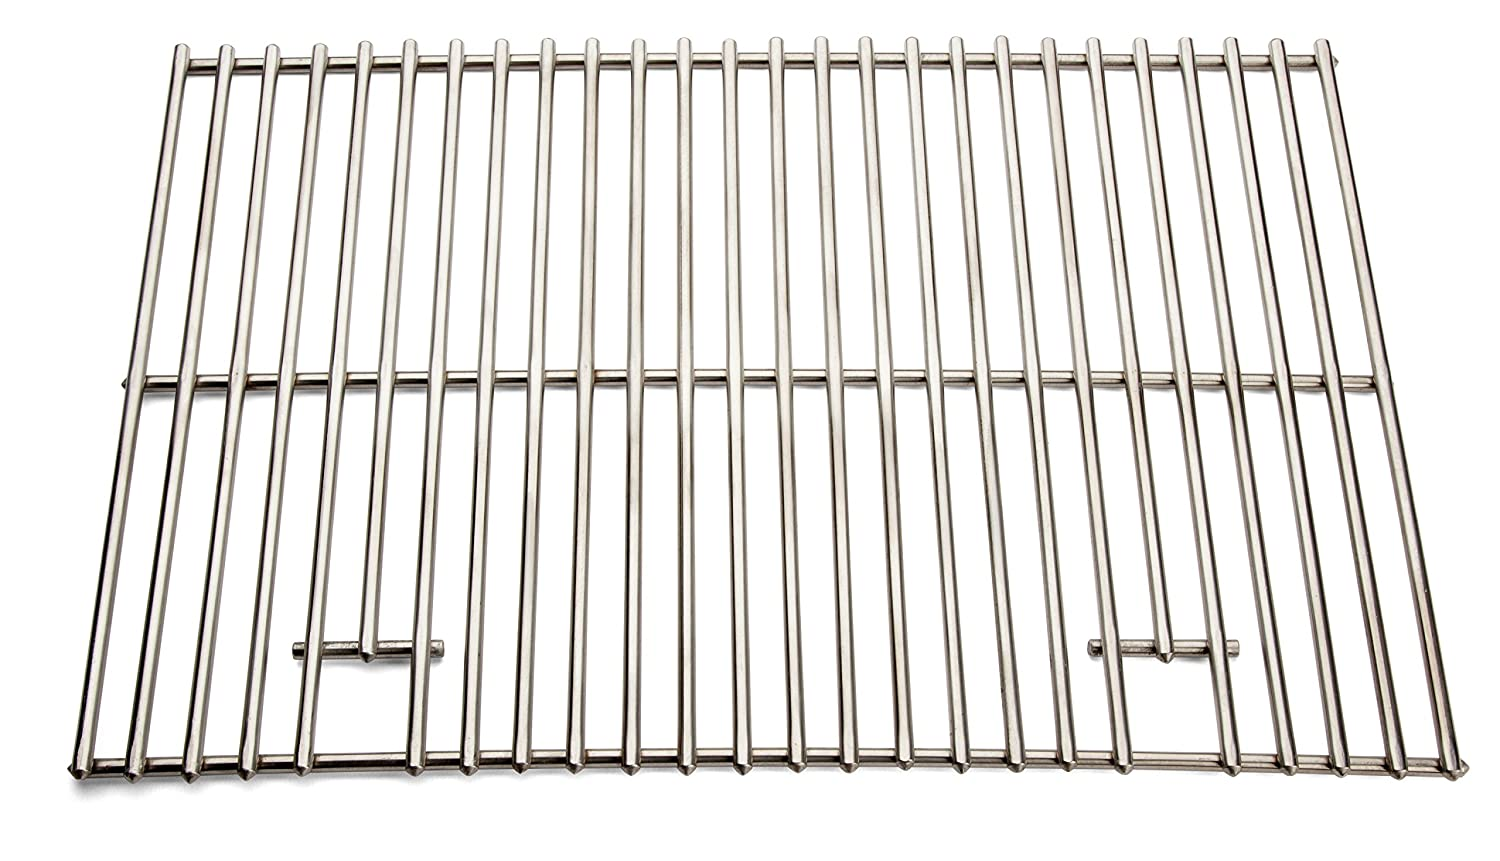 Cuisinart CGG-306 Replacement Cooking Grate 306-20087